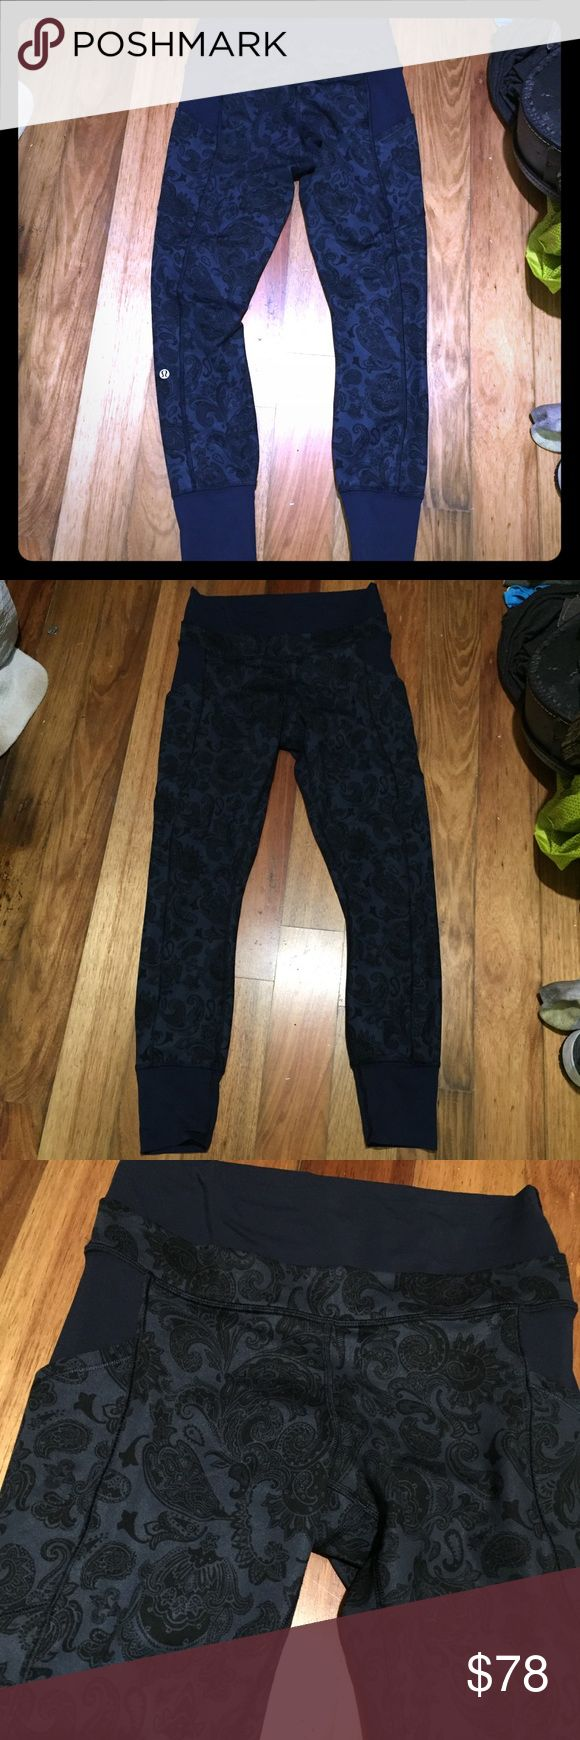 Lululemon inkwell navy paisley en route crop pant Size 6 en route pants. Double waistband. Nice and stretchy with side pockets. Excellent condition. lululemon athletica Pants